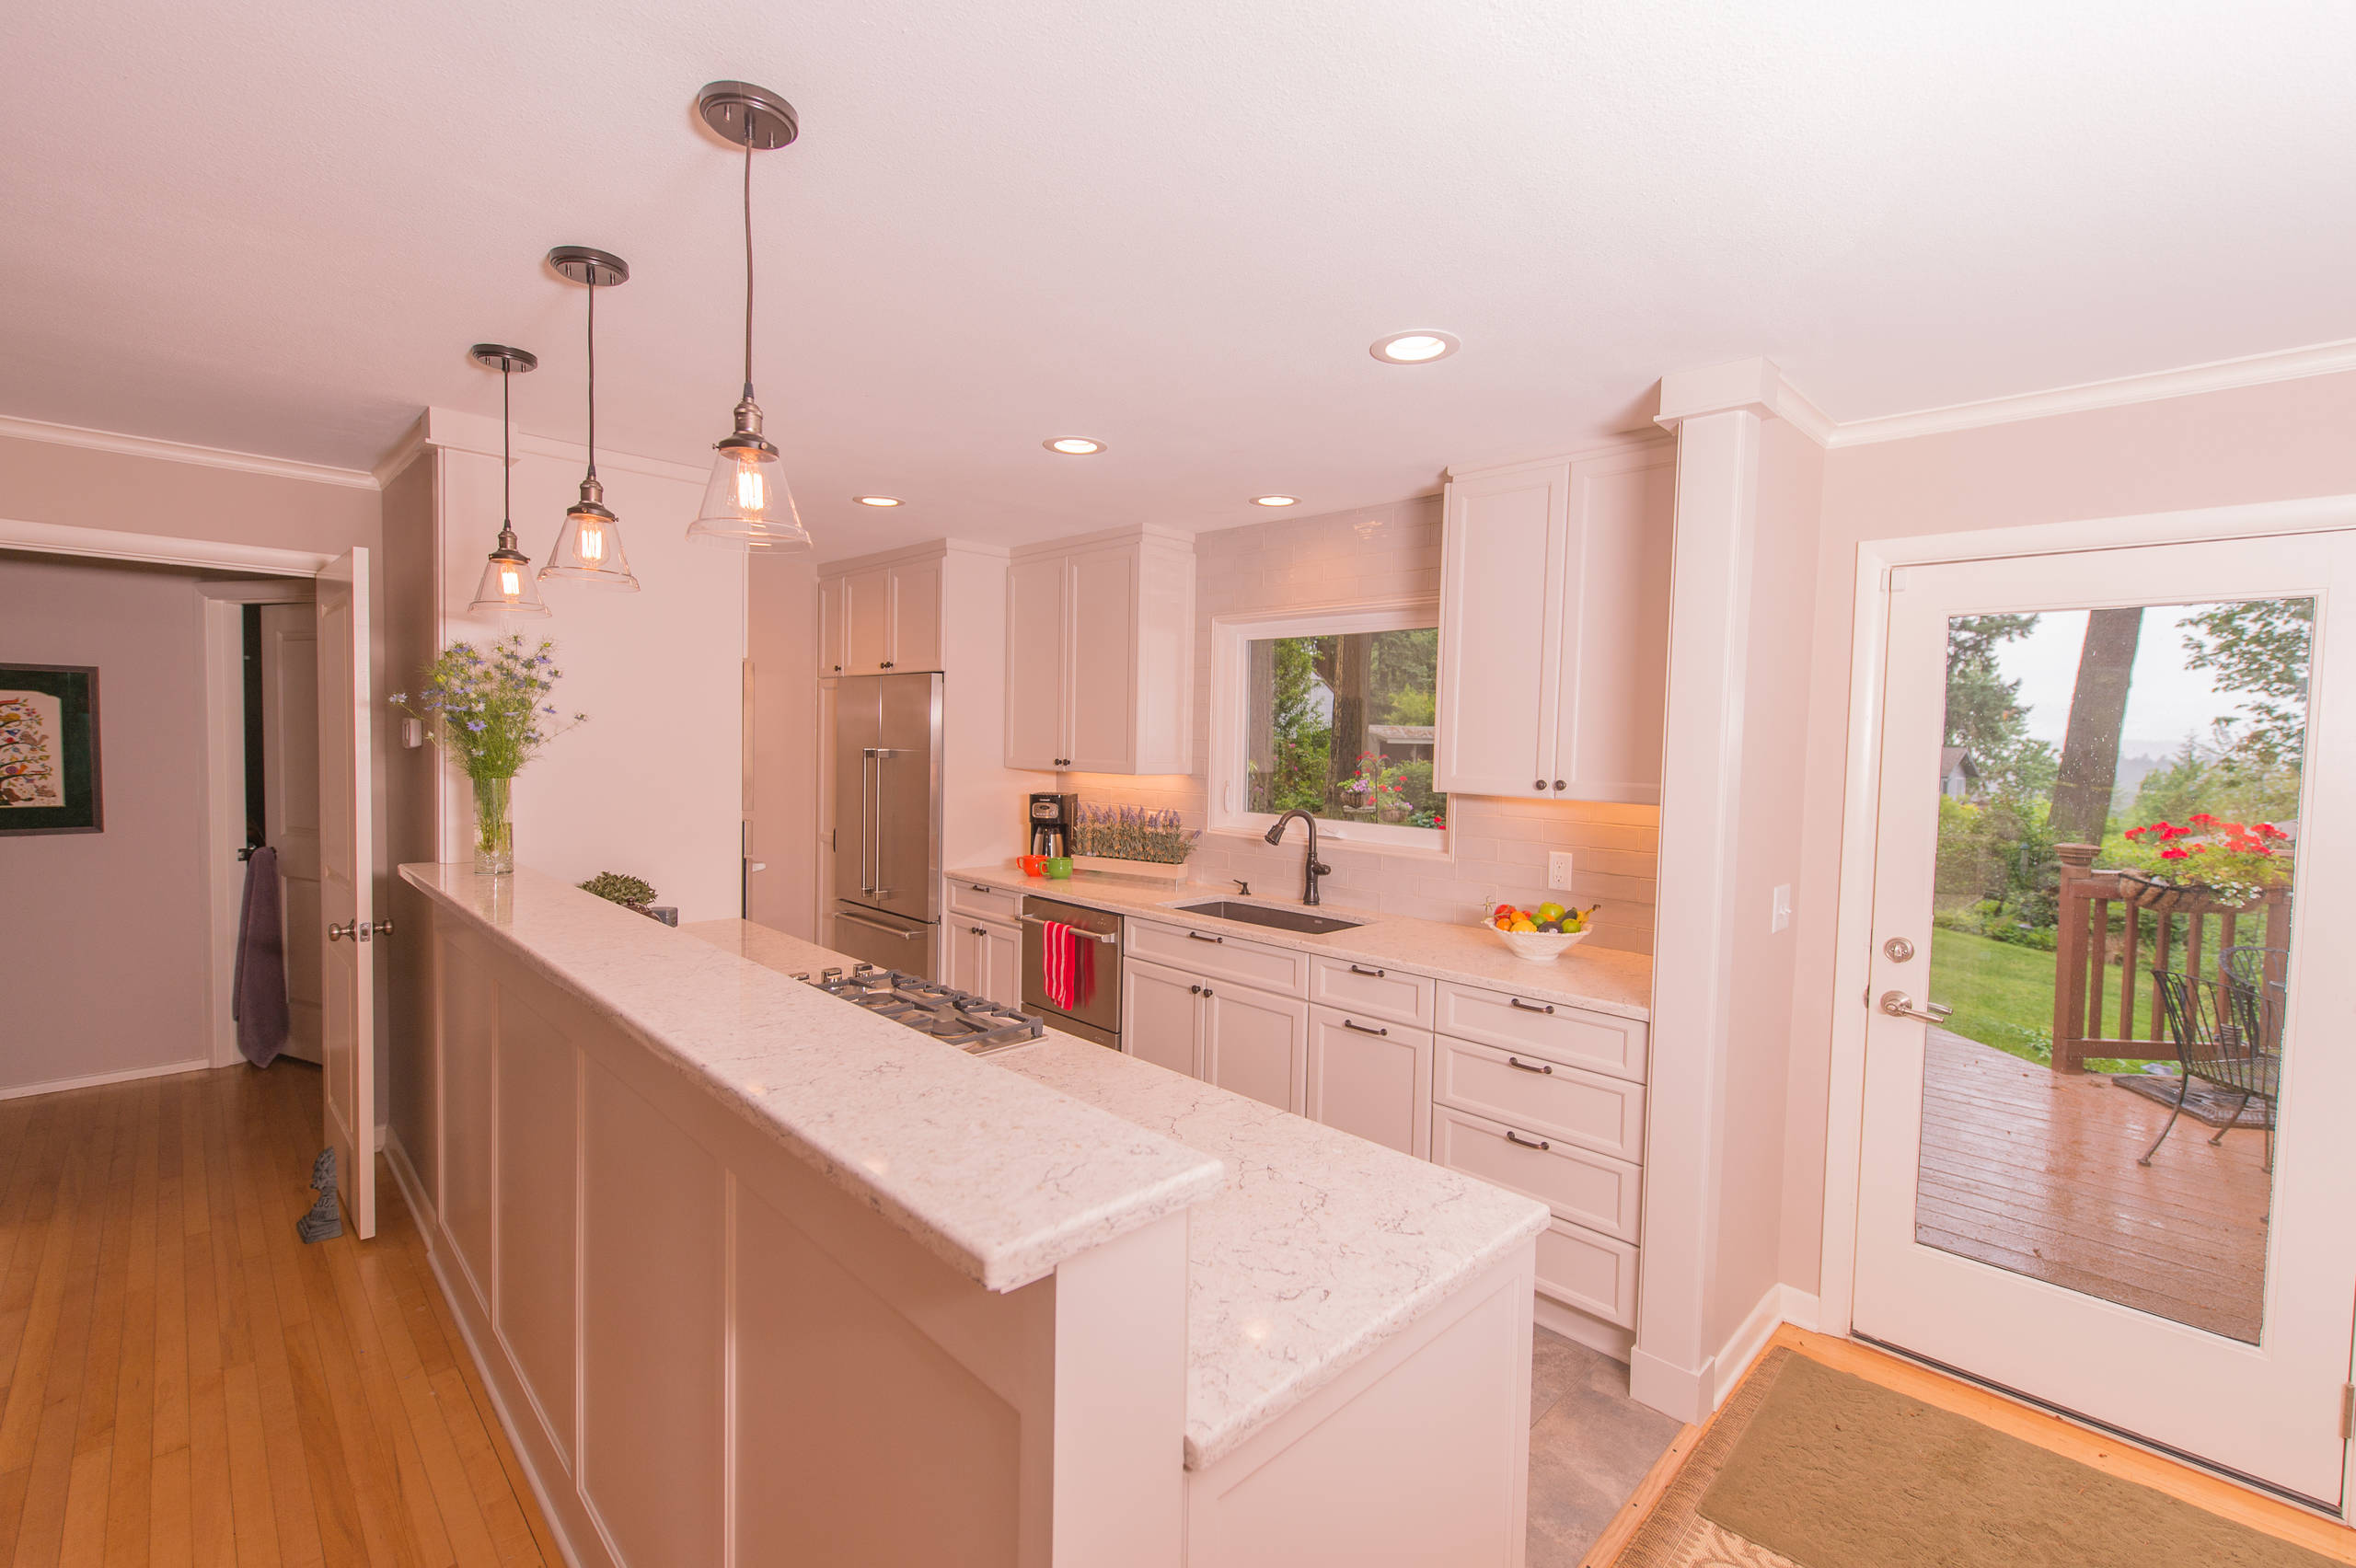 75 Beautiful Pink Kitchen With Marble Countertops Pictures Ideas December 2020 Houzz